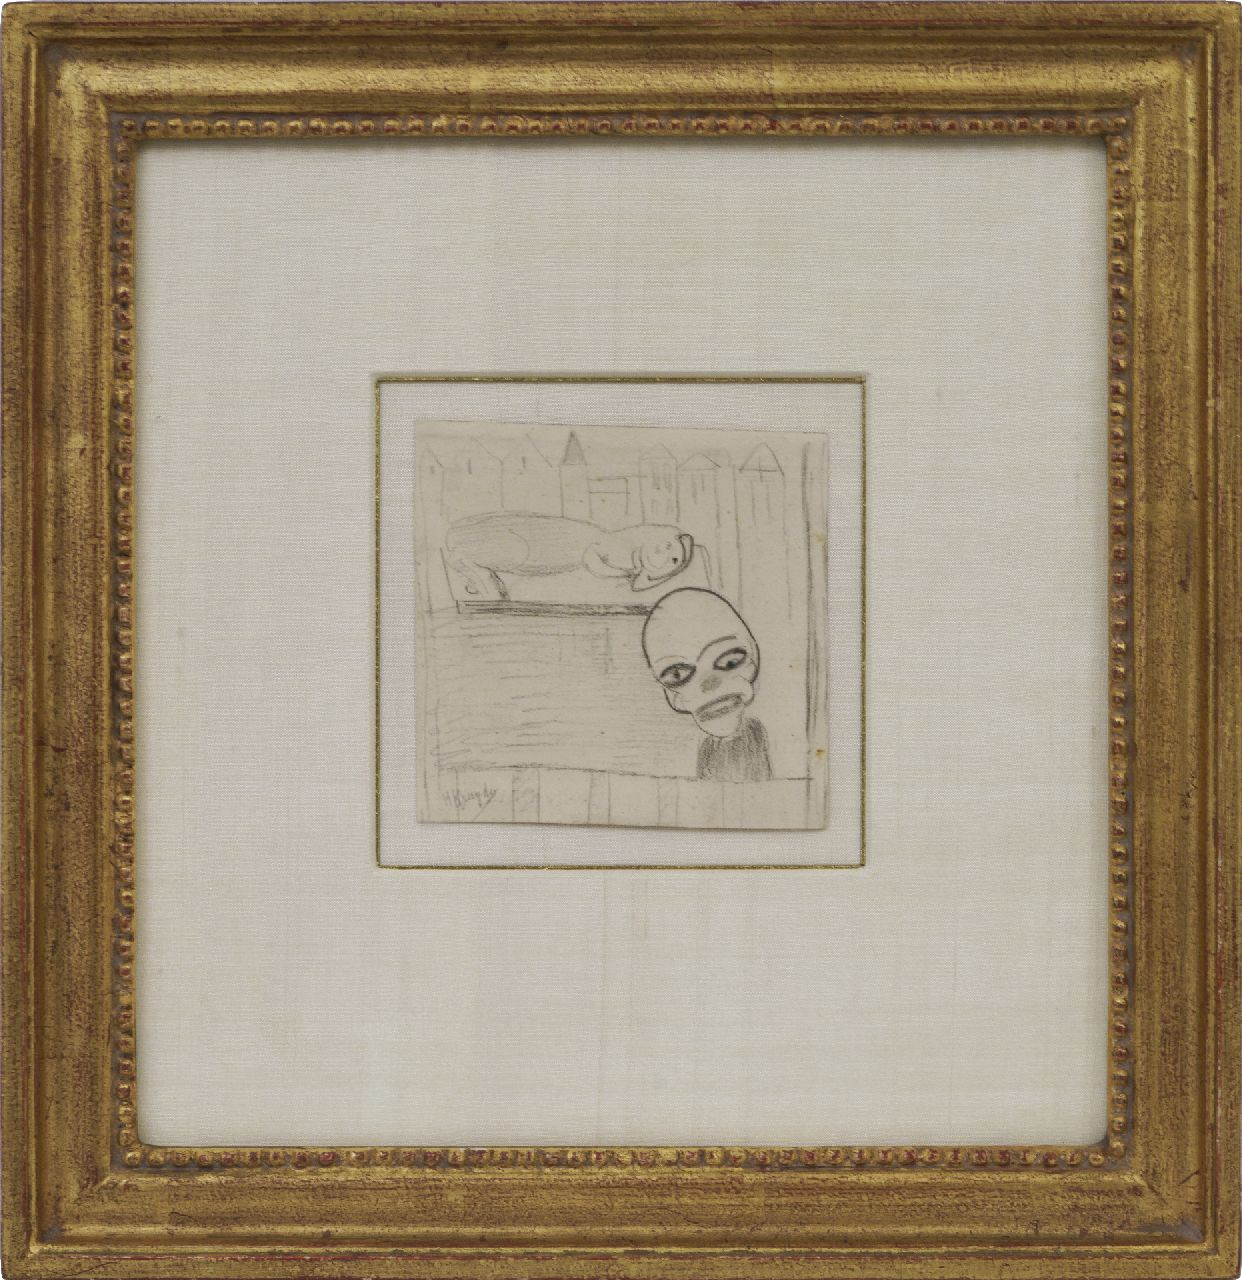 Kruyder H.J.  | 'Herman' Justus Kruyder | Watercolours and drawings offered for sale | A clown and an animal, black chalk on paper 10.0 x 10.2 cm, signed l.l.